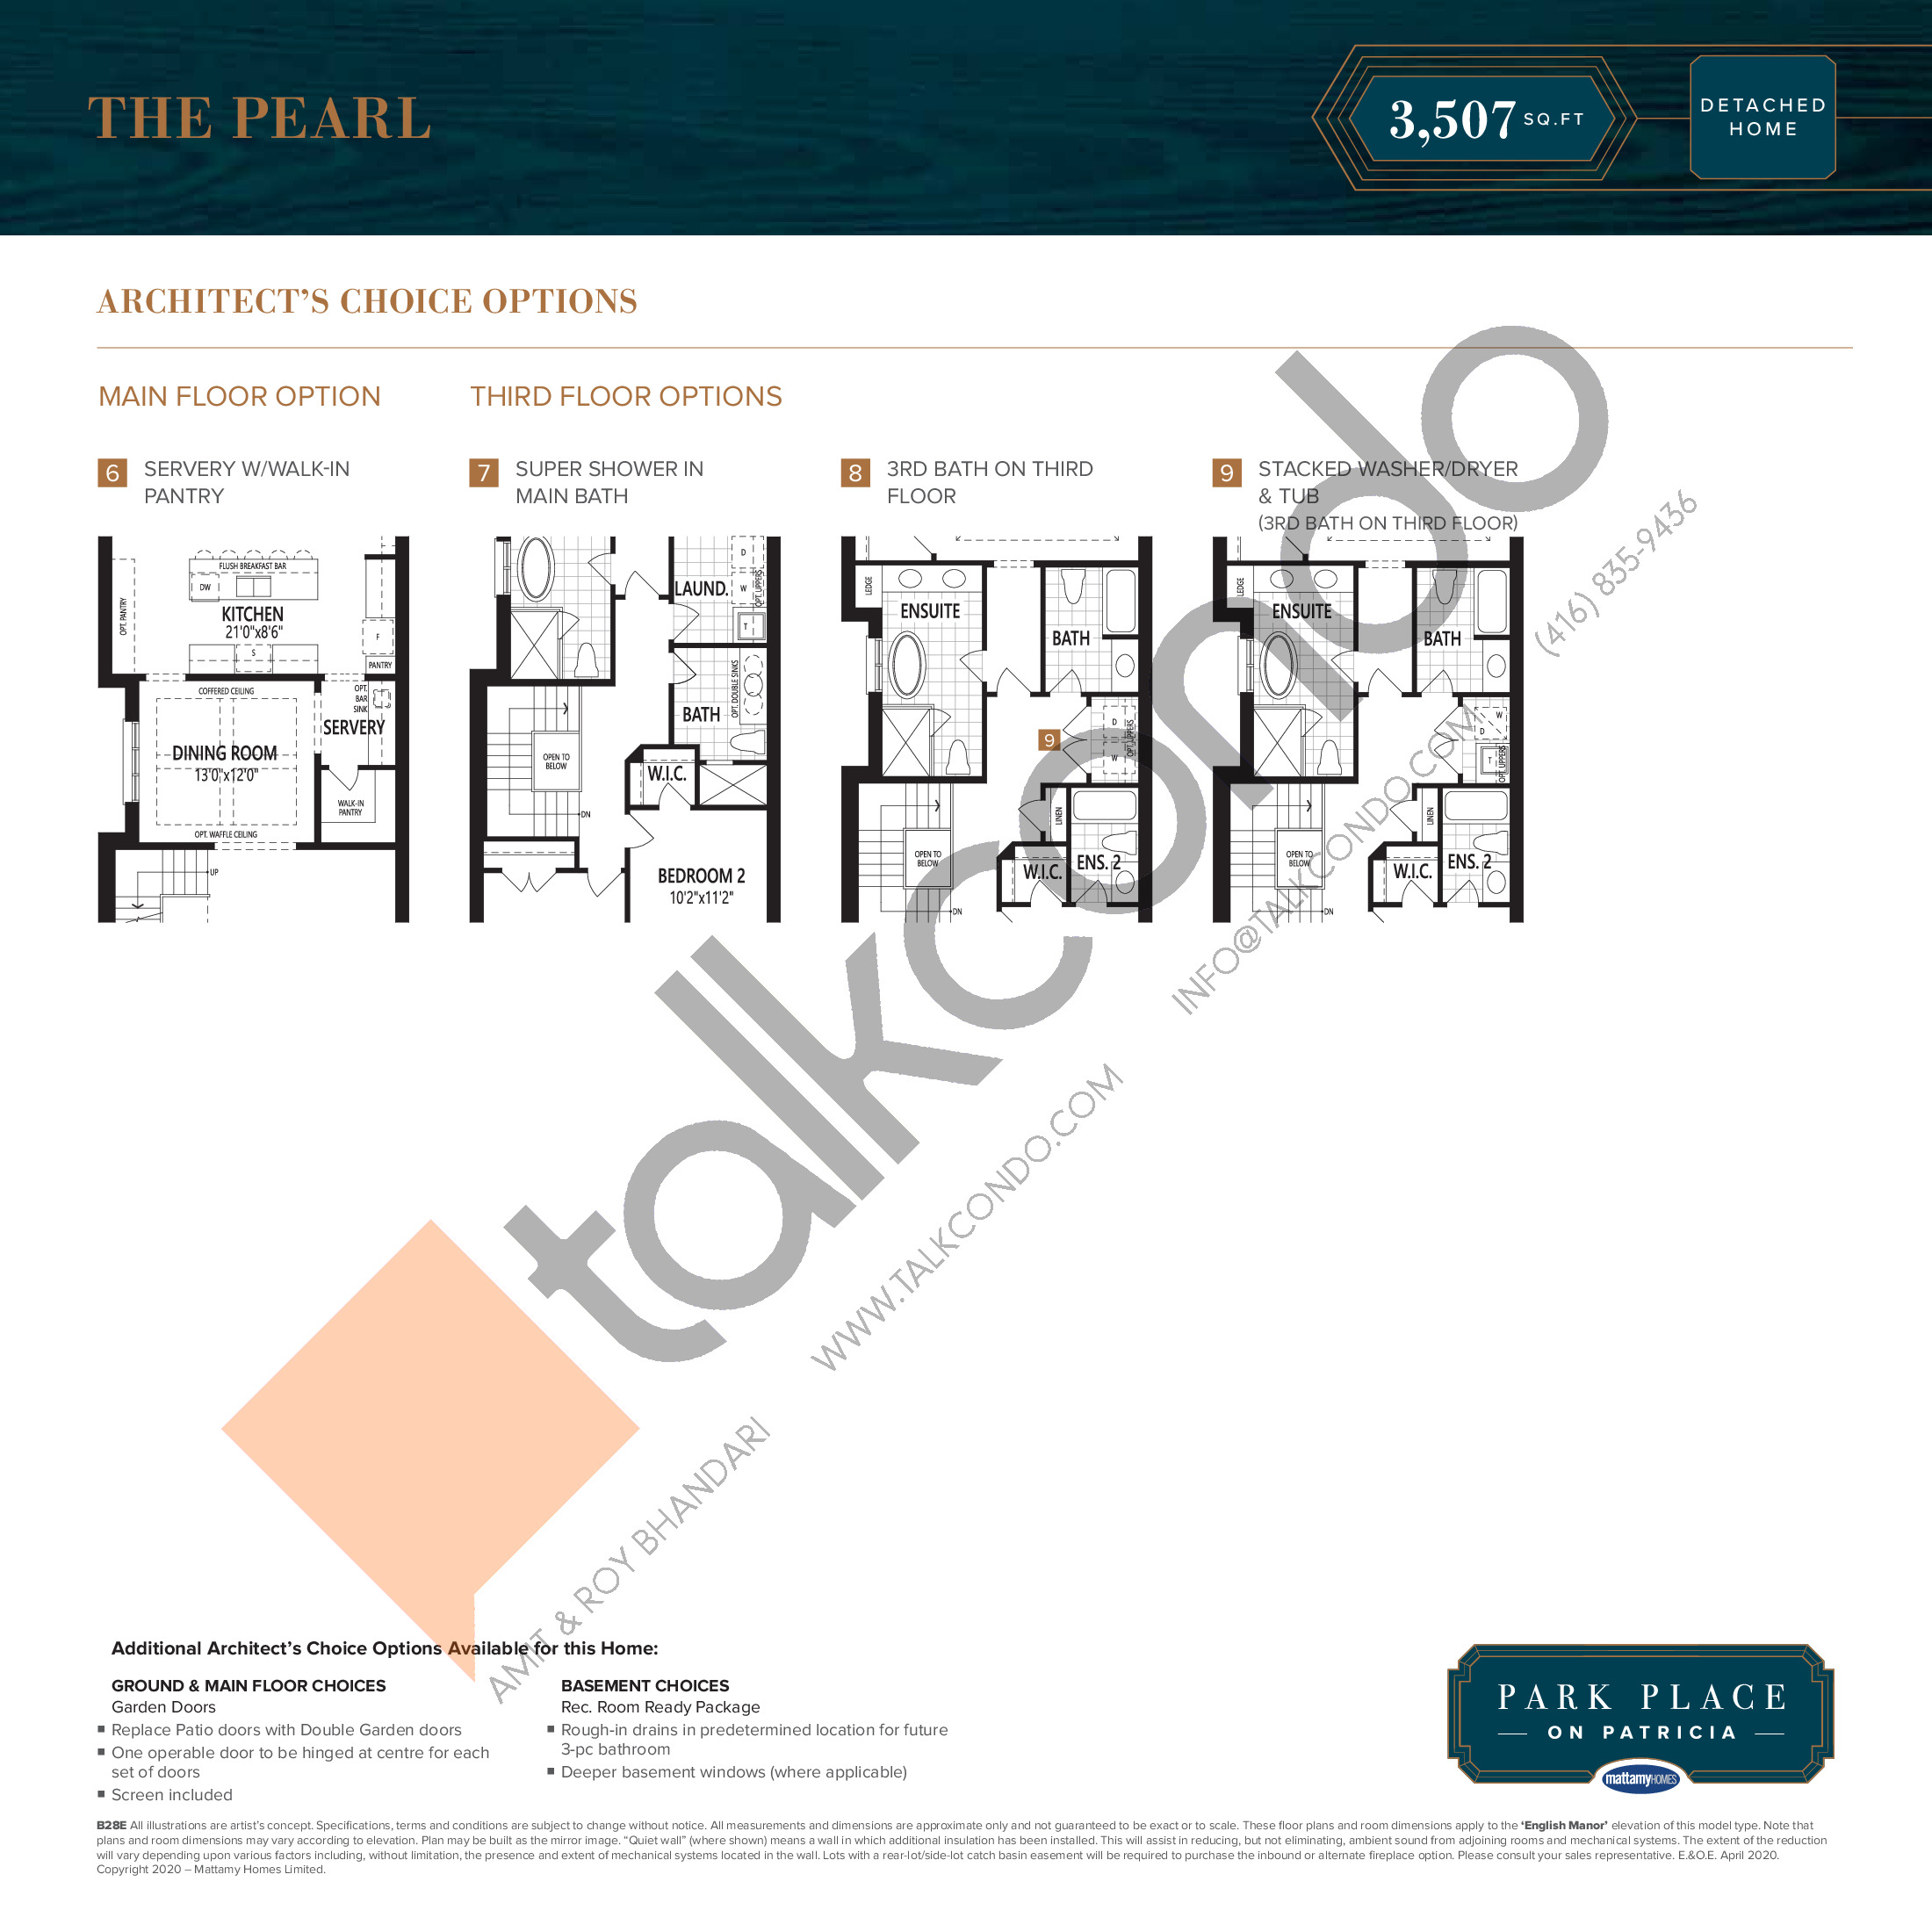 The Pearl (2/2) Floor Plan at Park Place on Patricia Towns - 3507 sq.ft